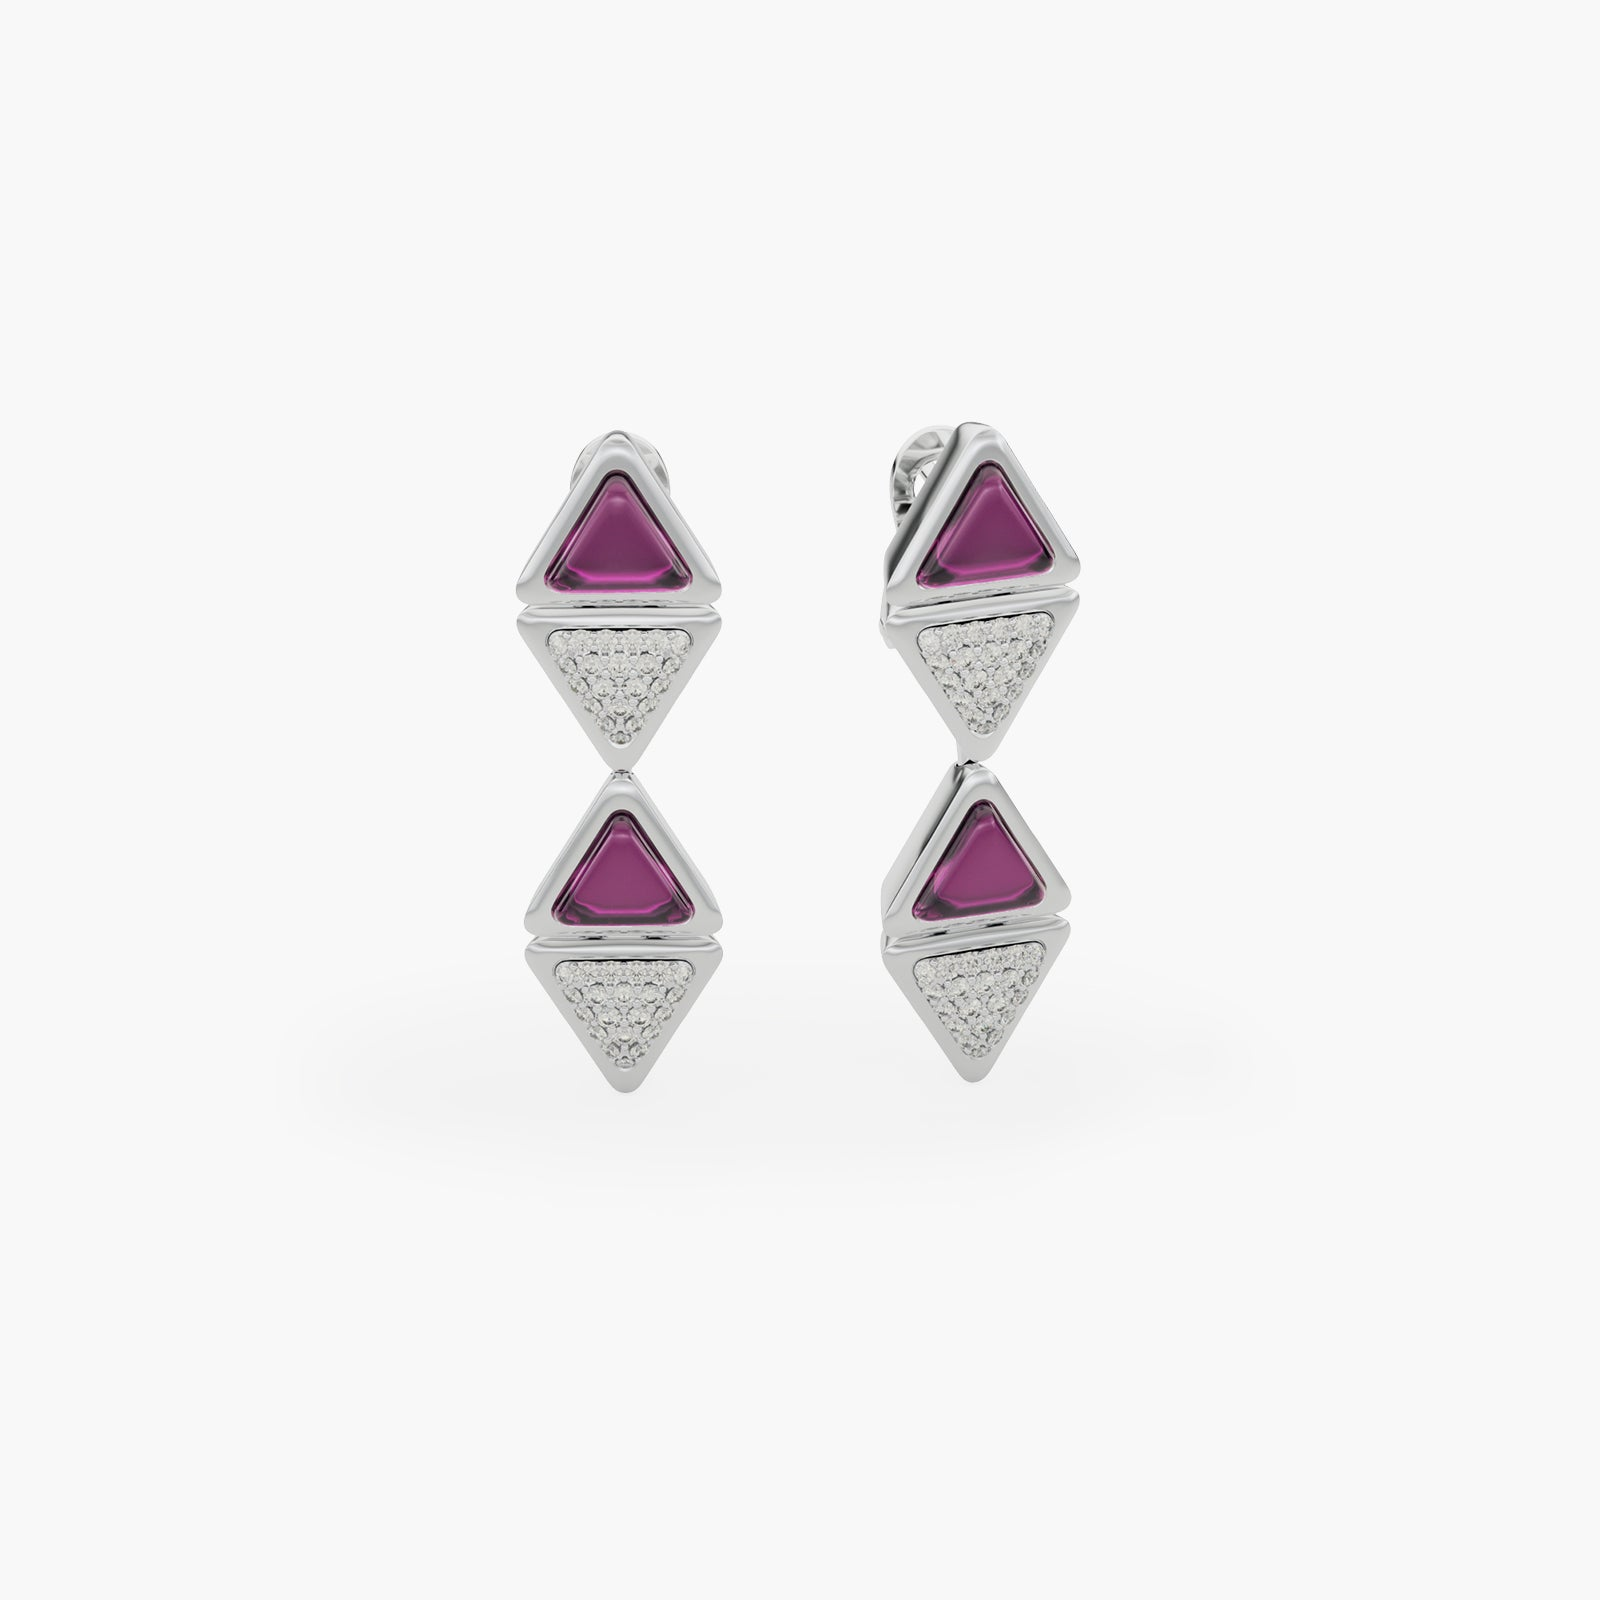 Earrings Mid Mirror Exquisite White Gold Pink Garnet and Diamonds